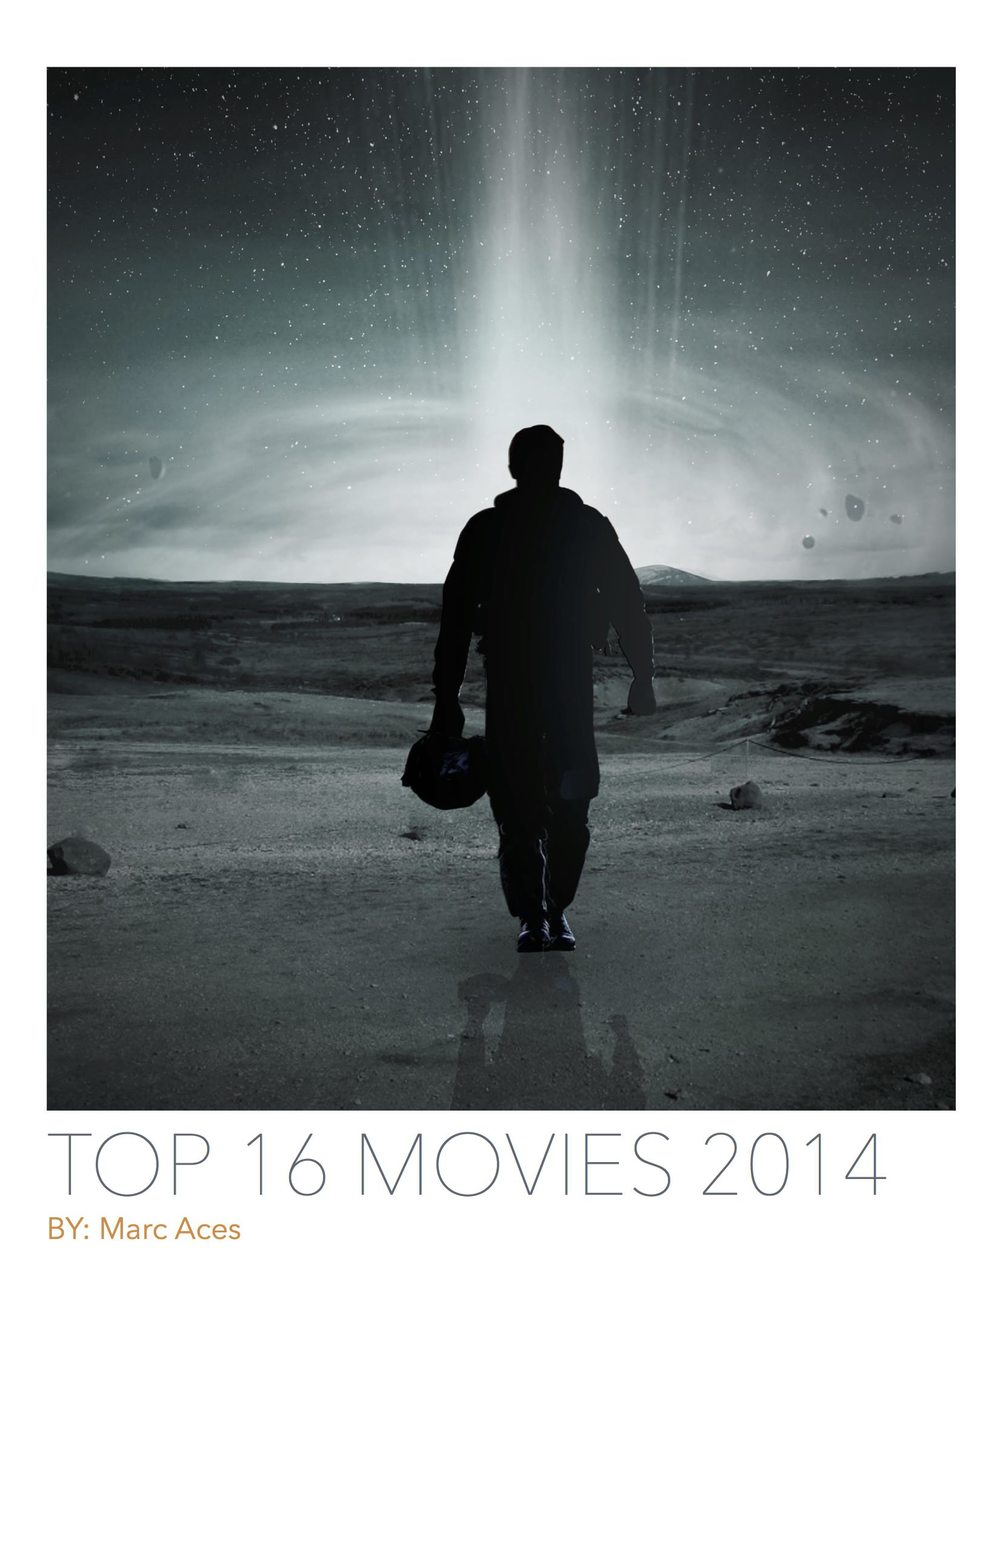 Top 16 Movies of 2014